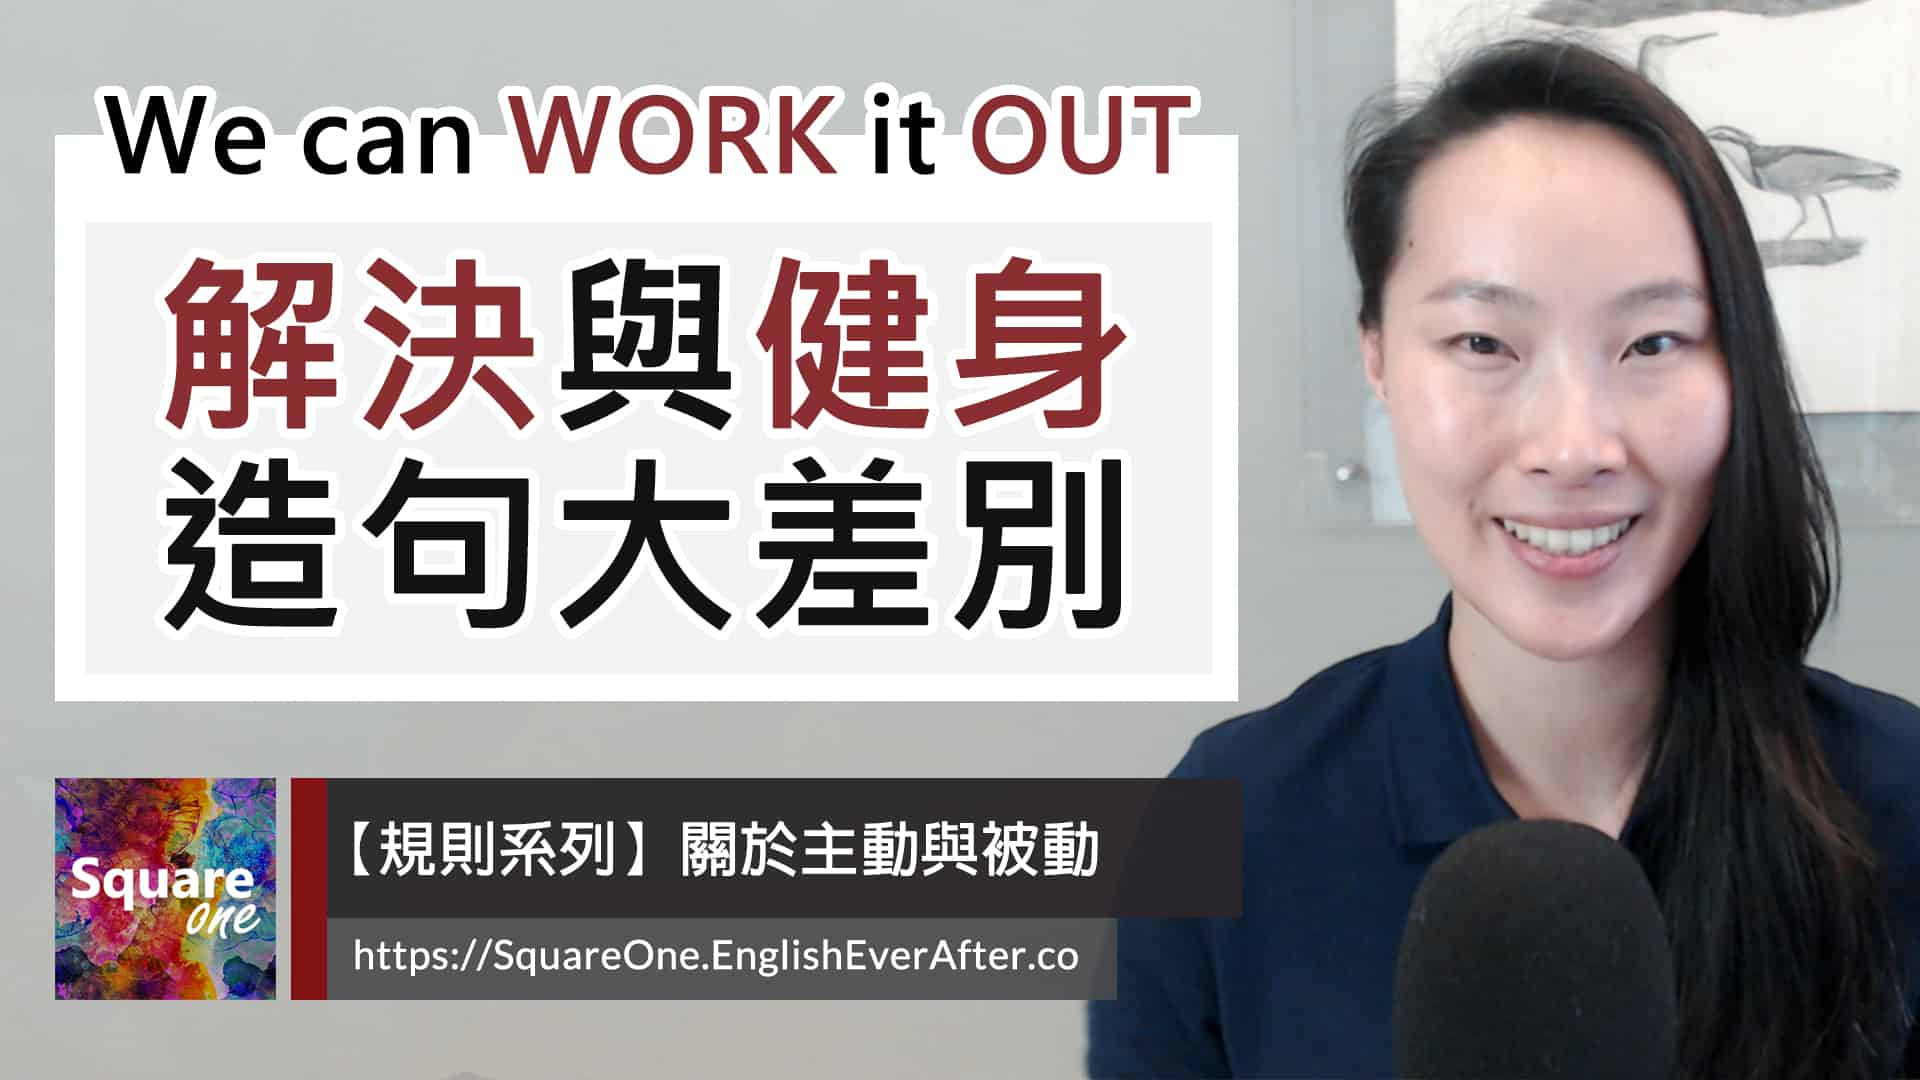 Work out 中文 (解決 vs. 健身) |We can work it out!|活化英文